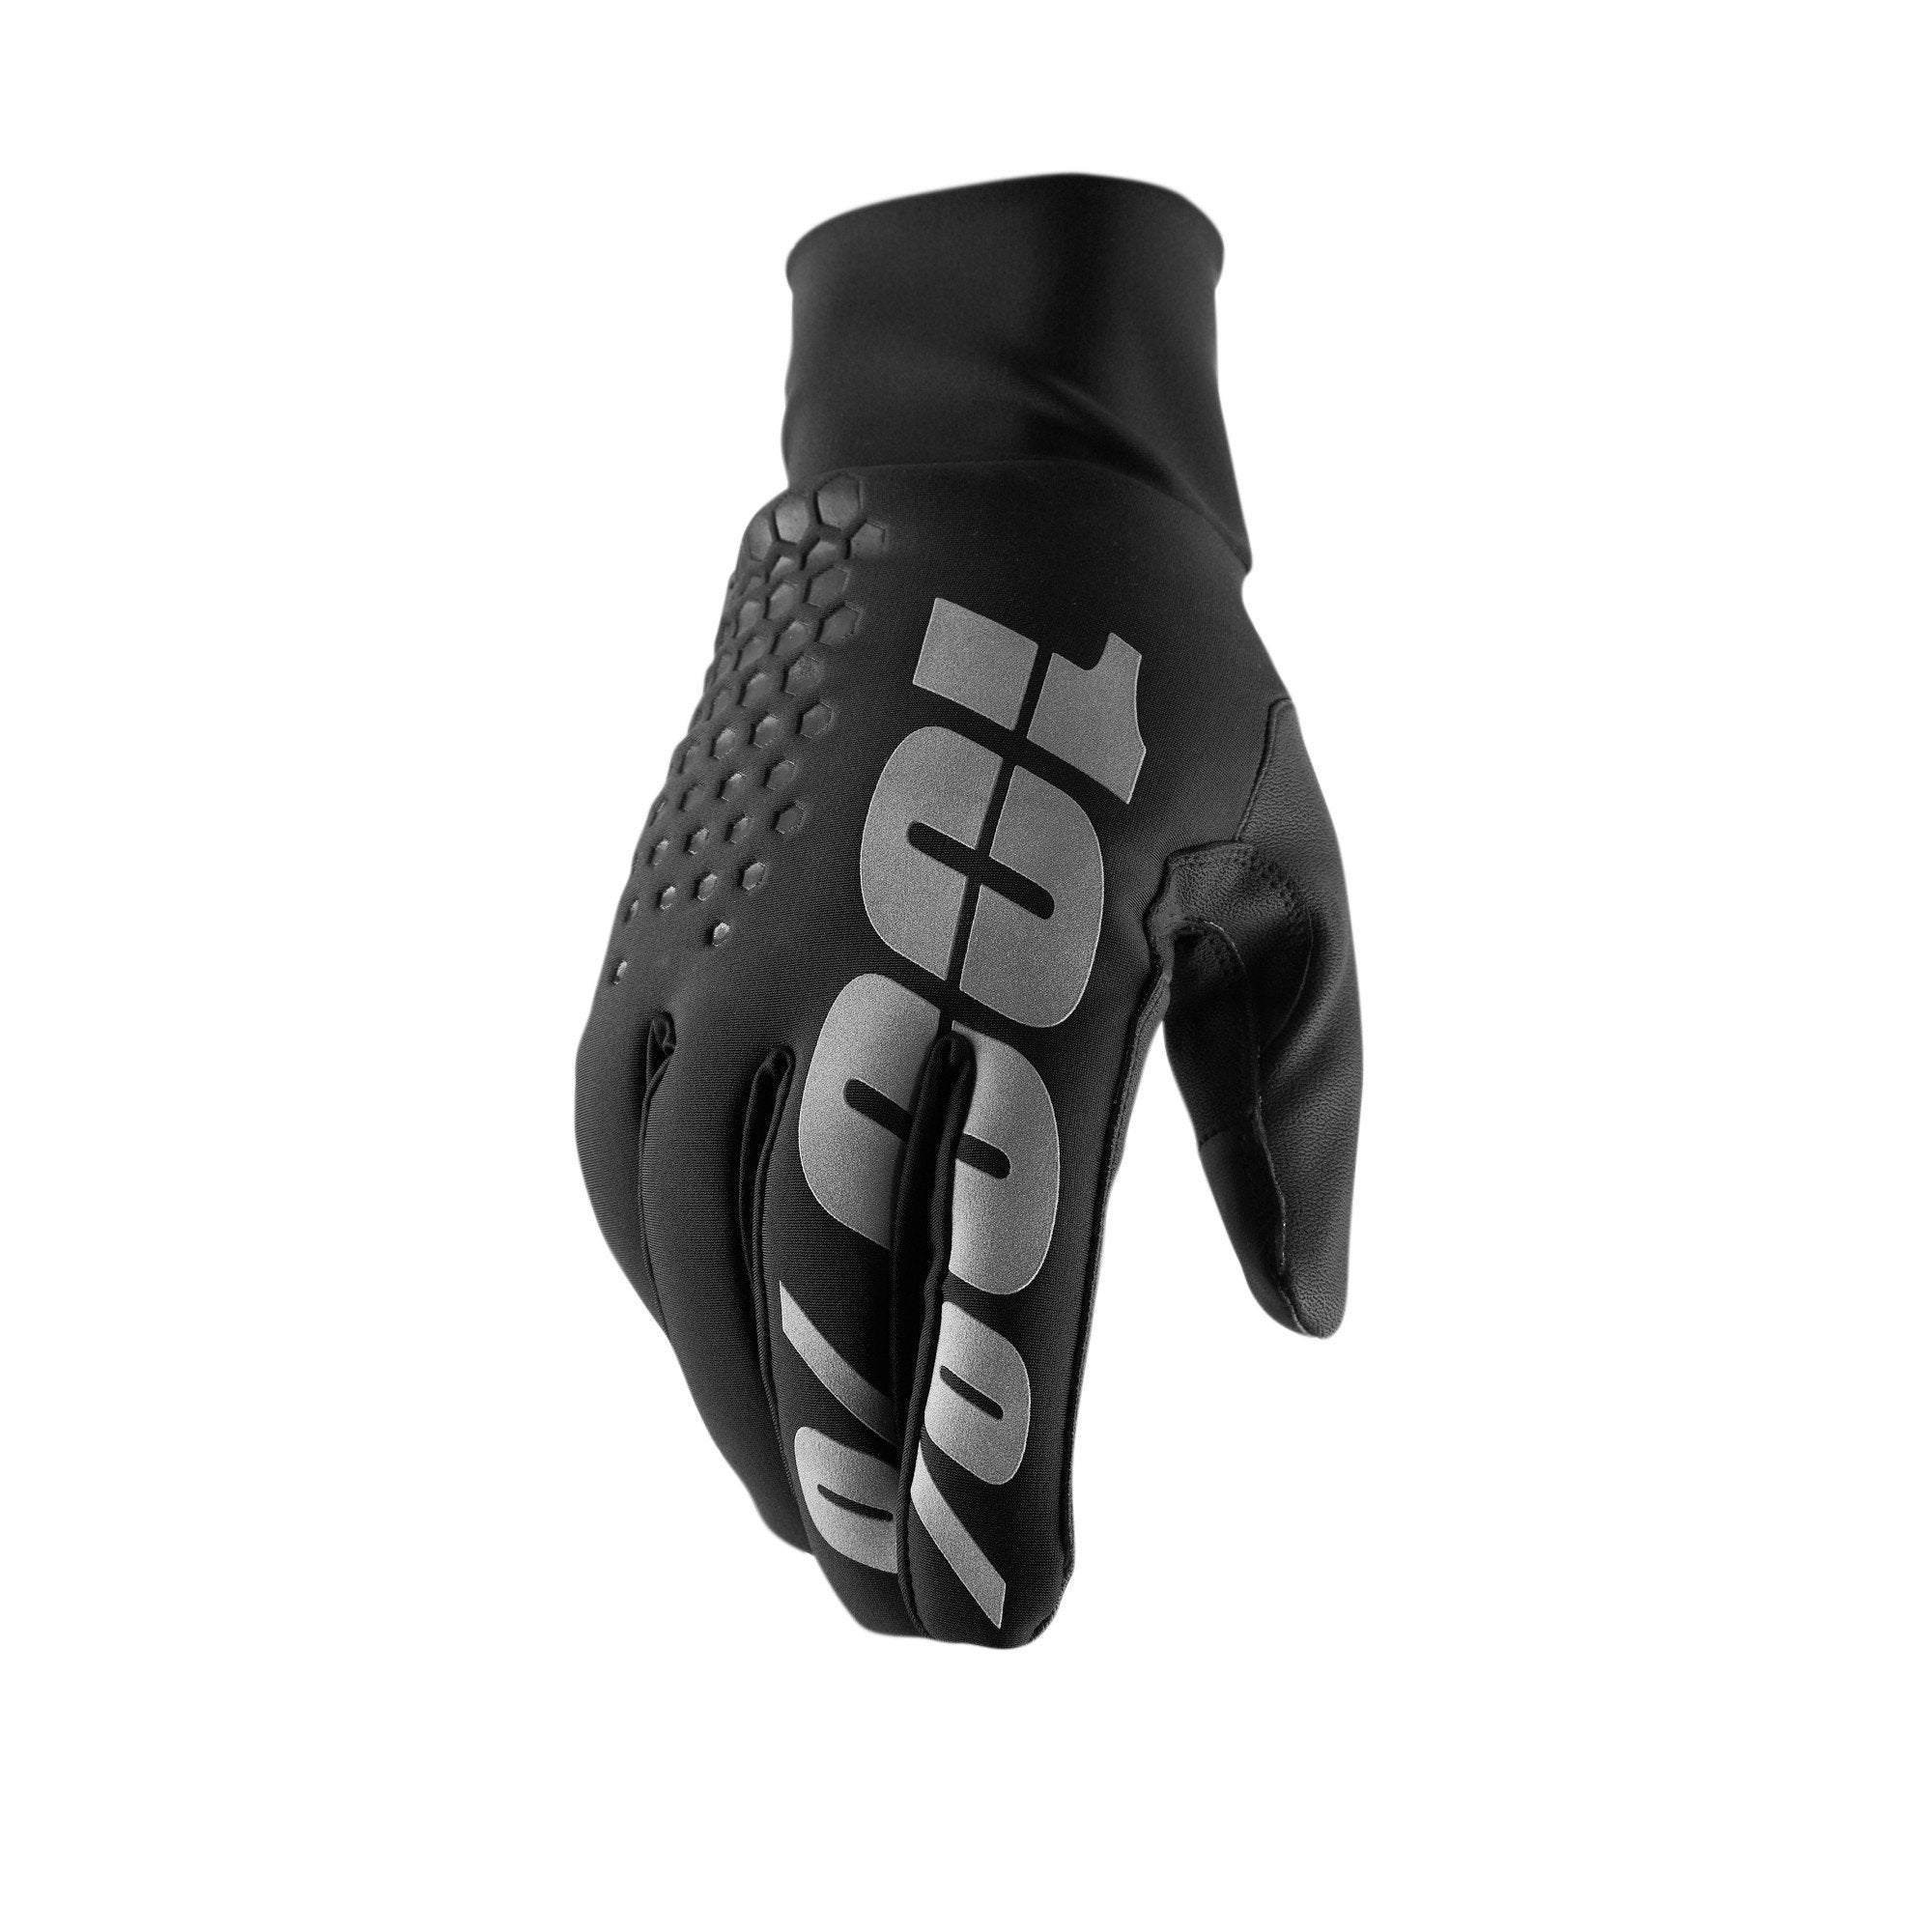 100% Cycle Clothing > Gloves & Mitts 100% Hydromatic Brisker Glove - Black